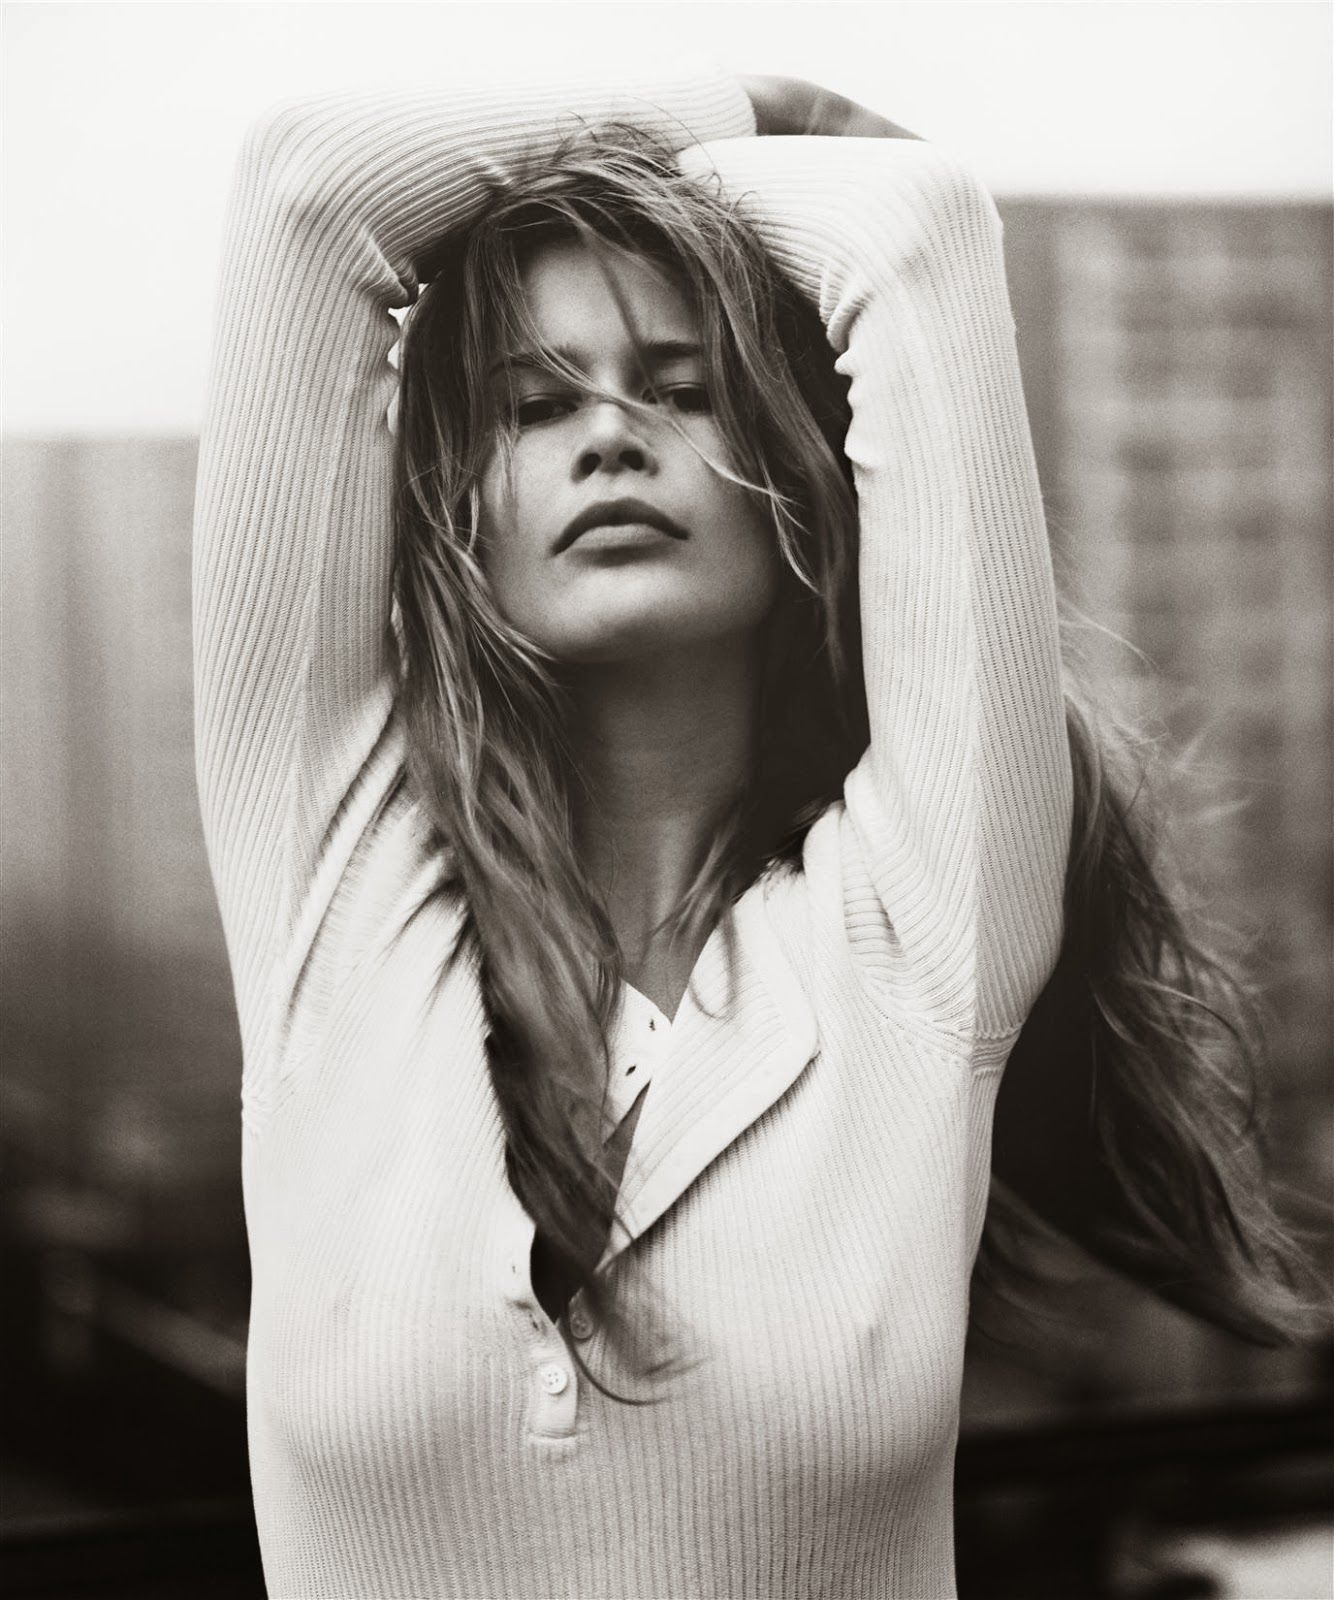 Claudia Schiffer Simple Styling Supermodels Original Supermodels Claudia Schiffer